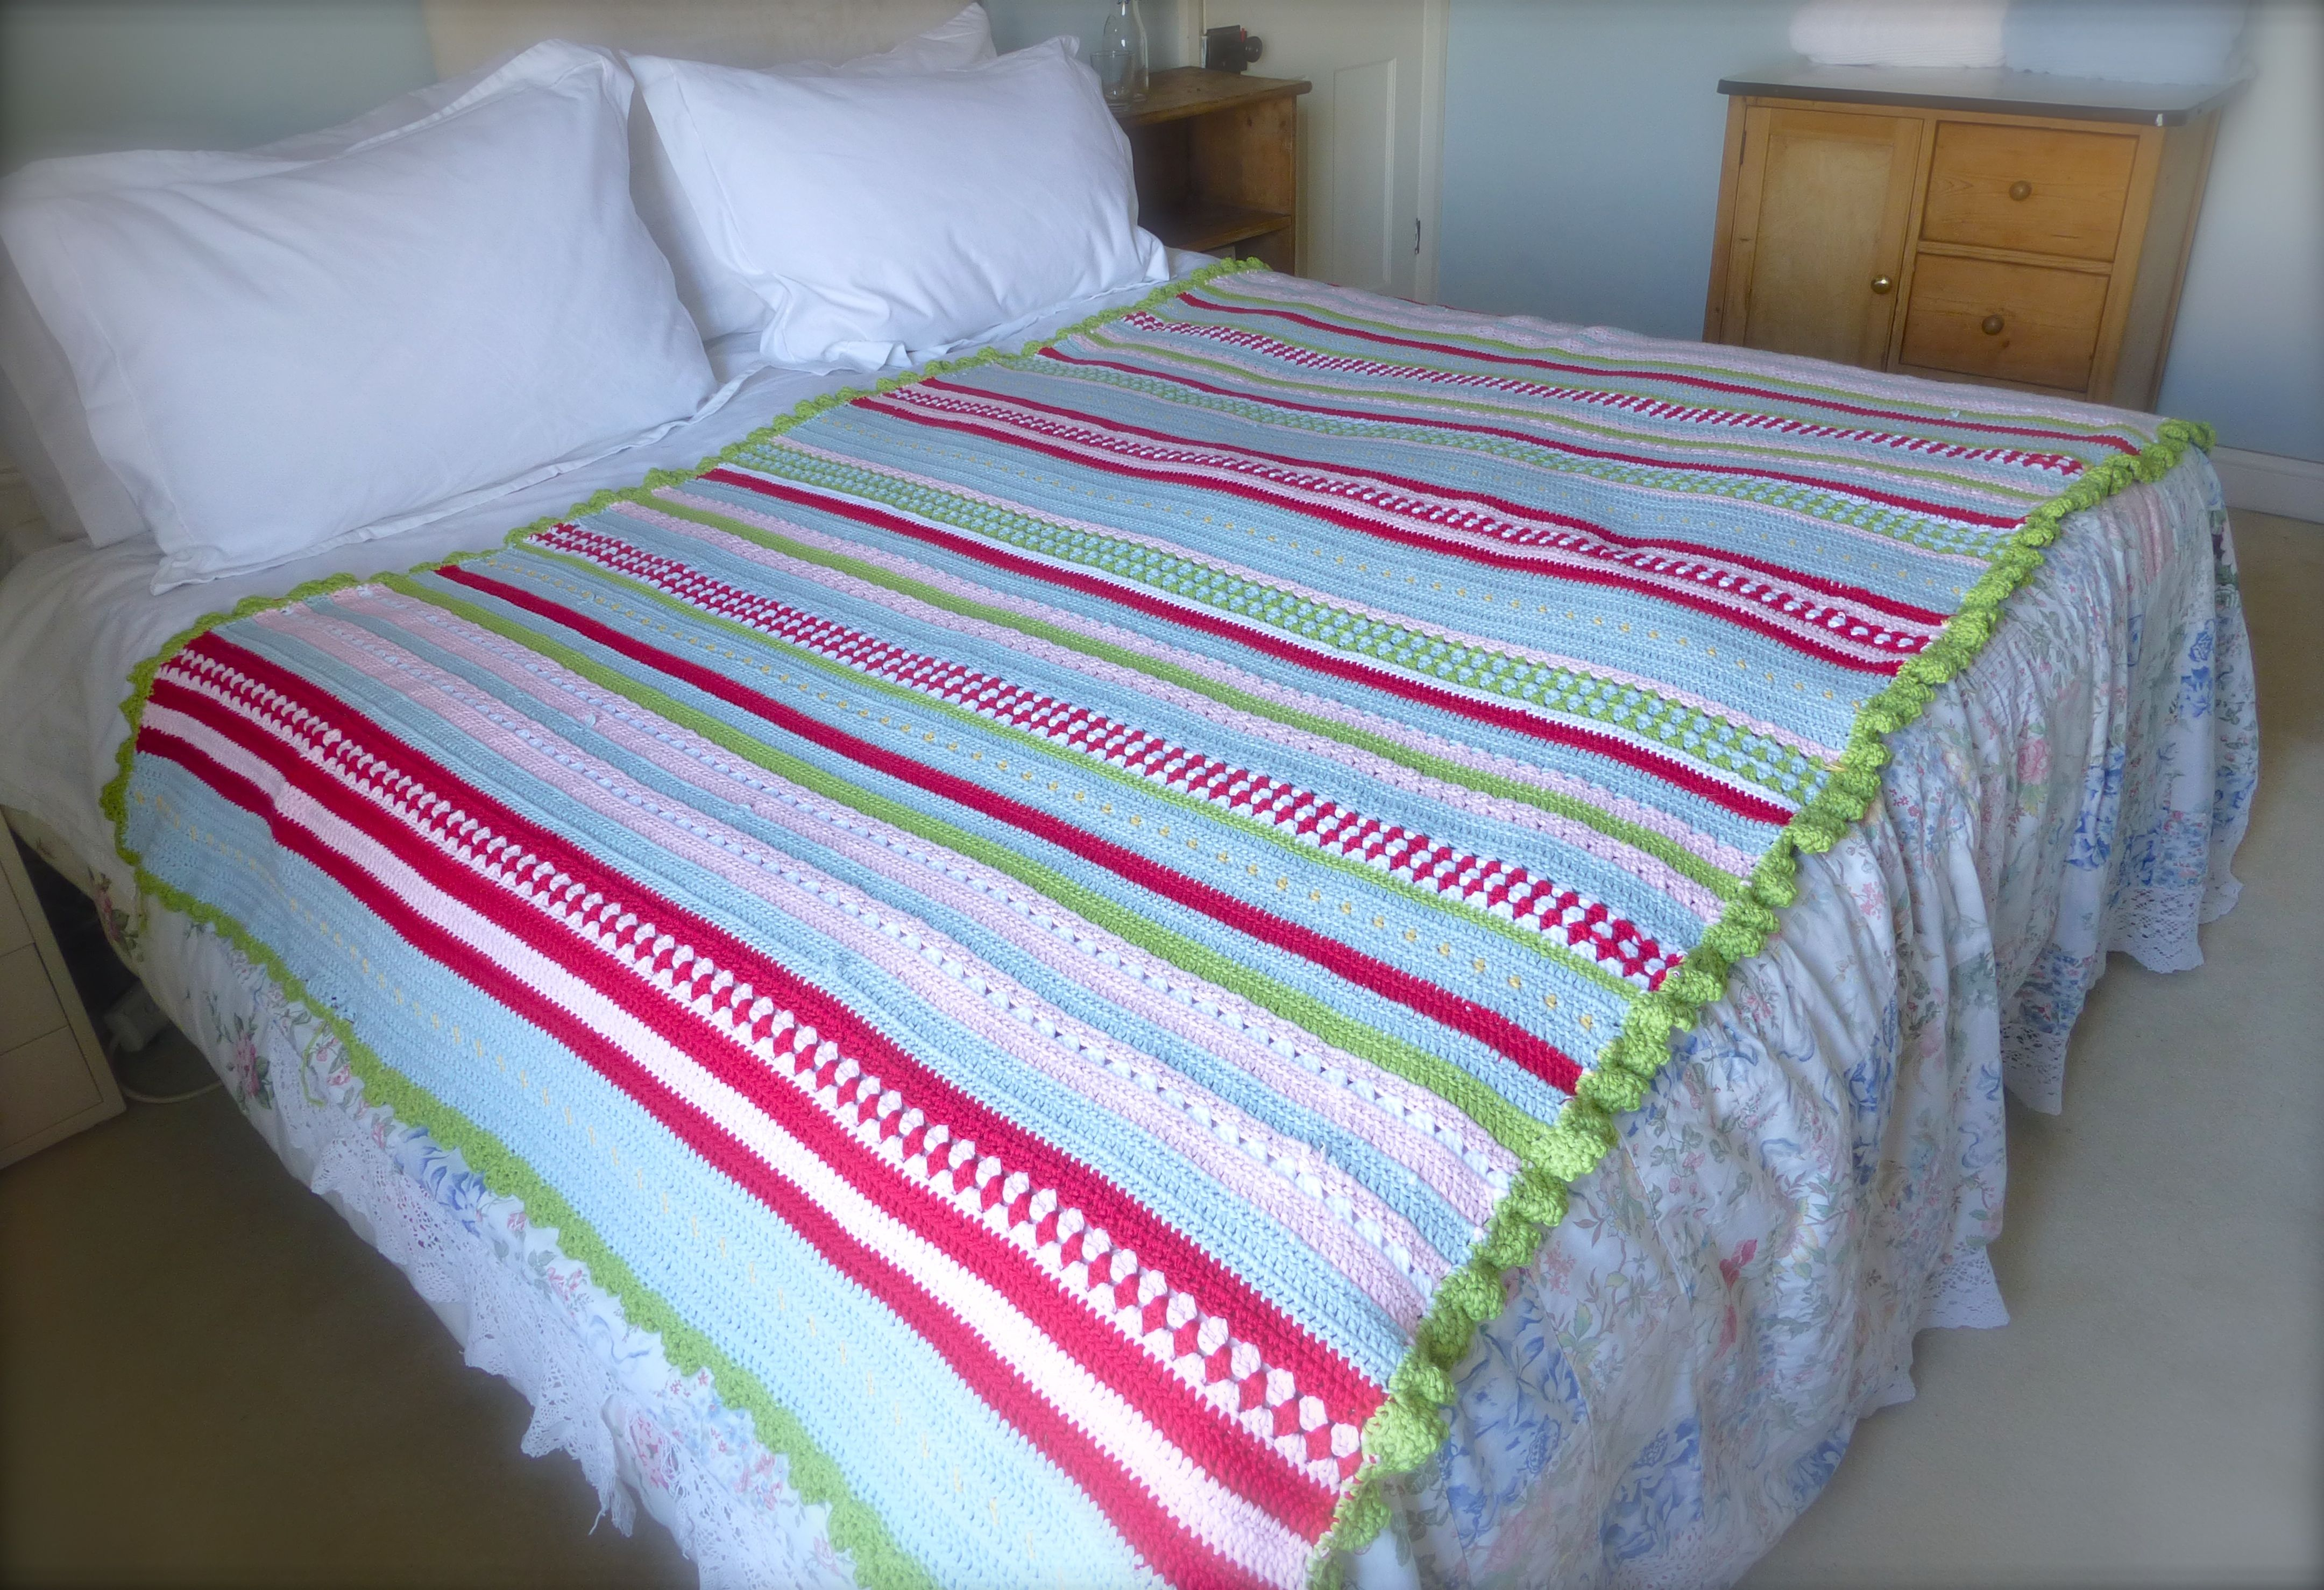 Finished! Greengate Style Crochet Blanket (With FREE pattern!)   Sewchet